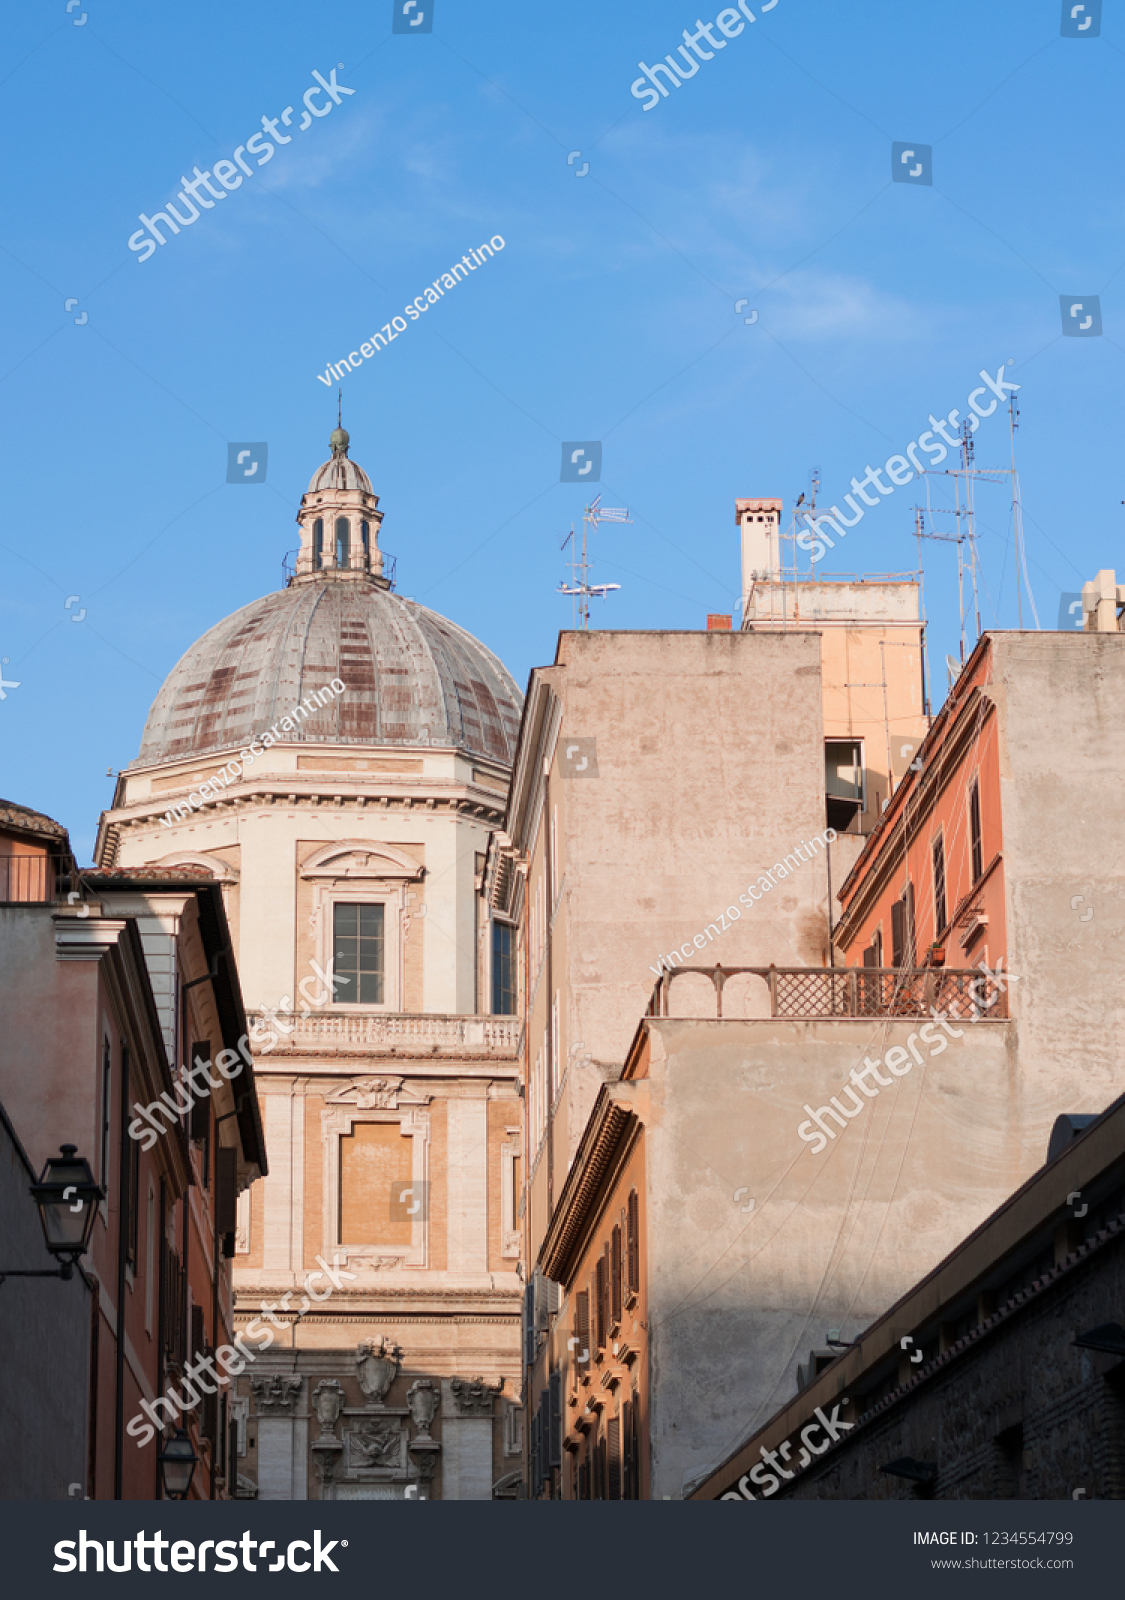 Monuments and places of Rome #1234554799